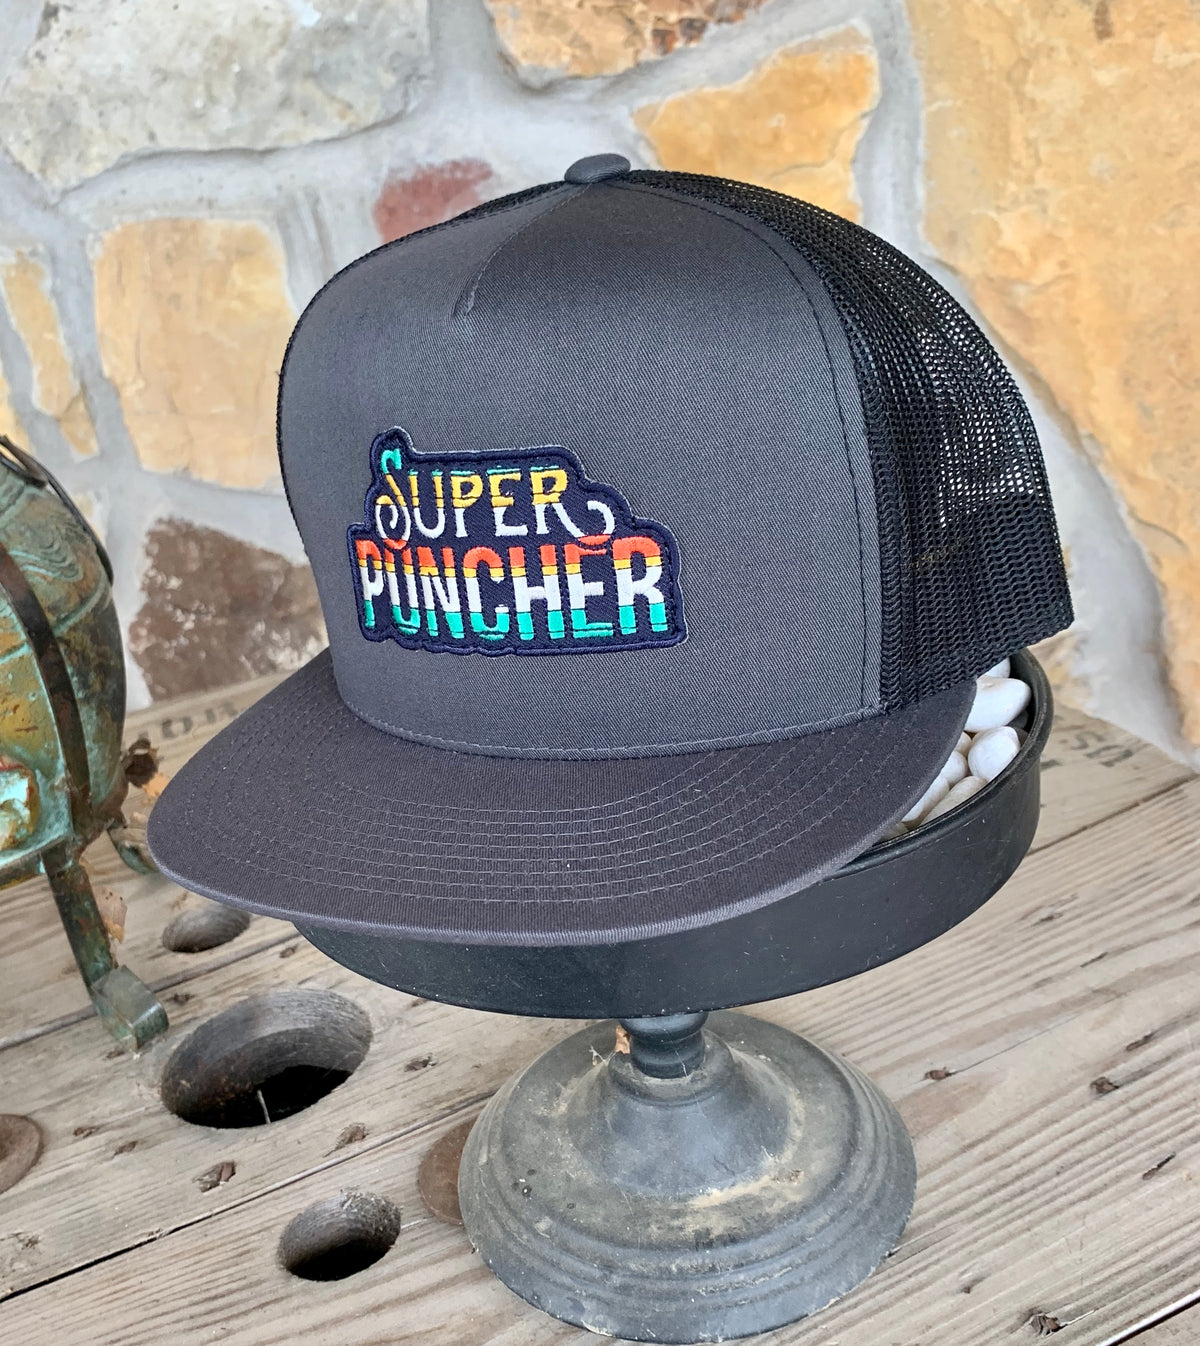 Super Puncher Ball Cap by Dale Brisby